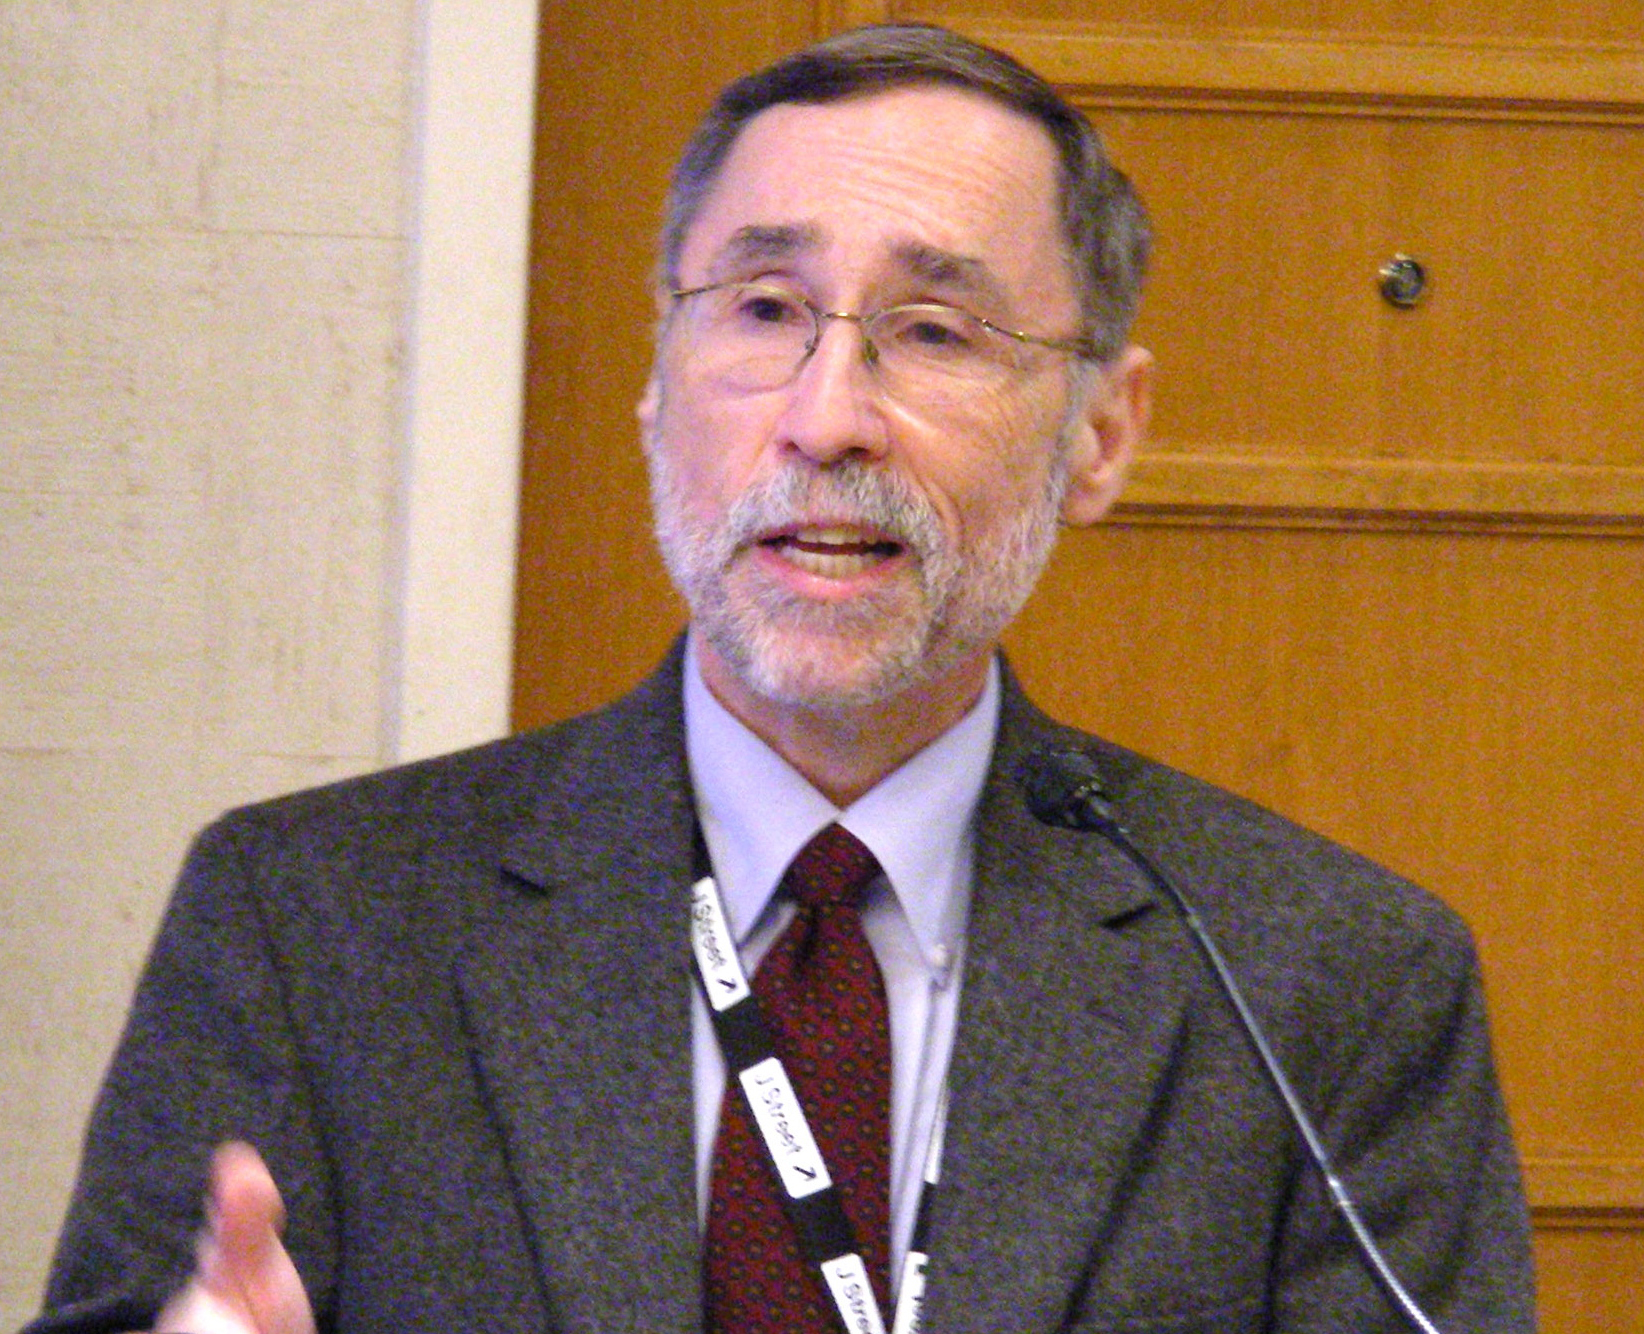 Rabbi John S. Friedman